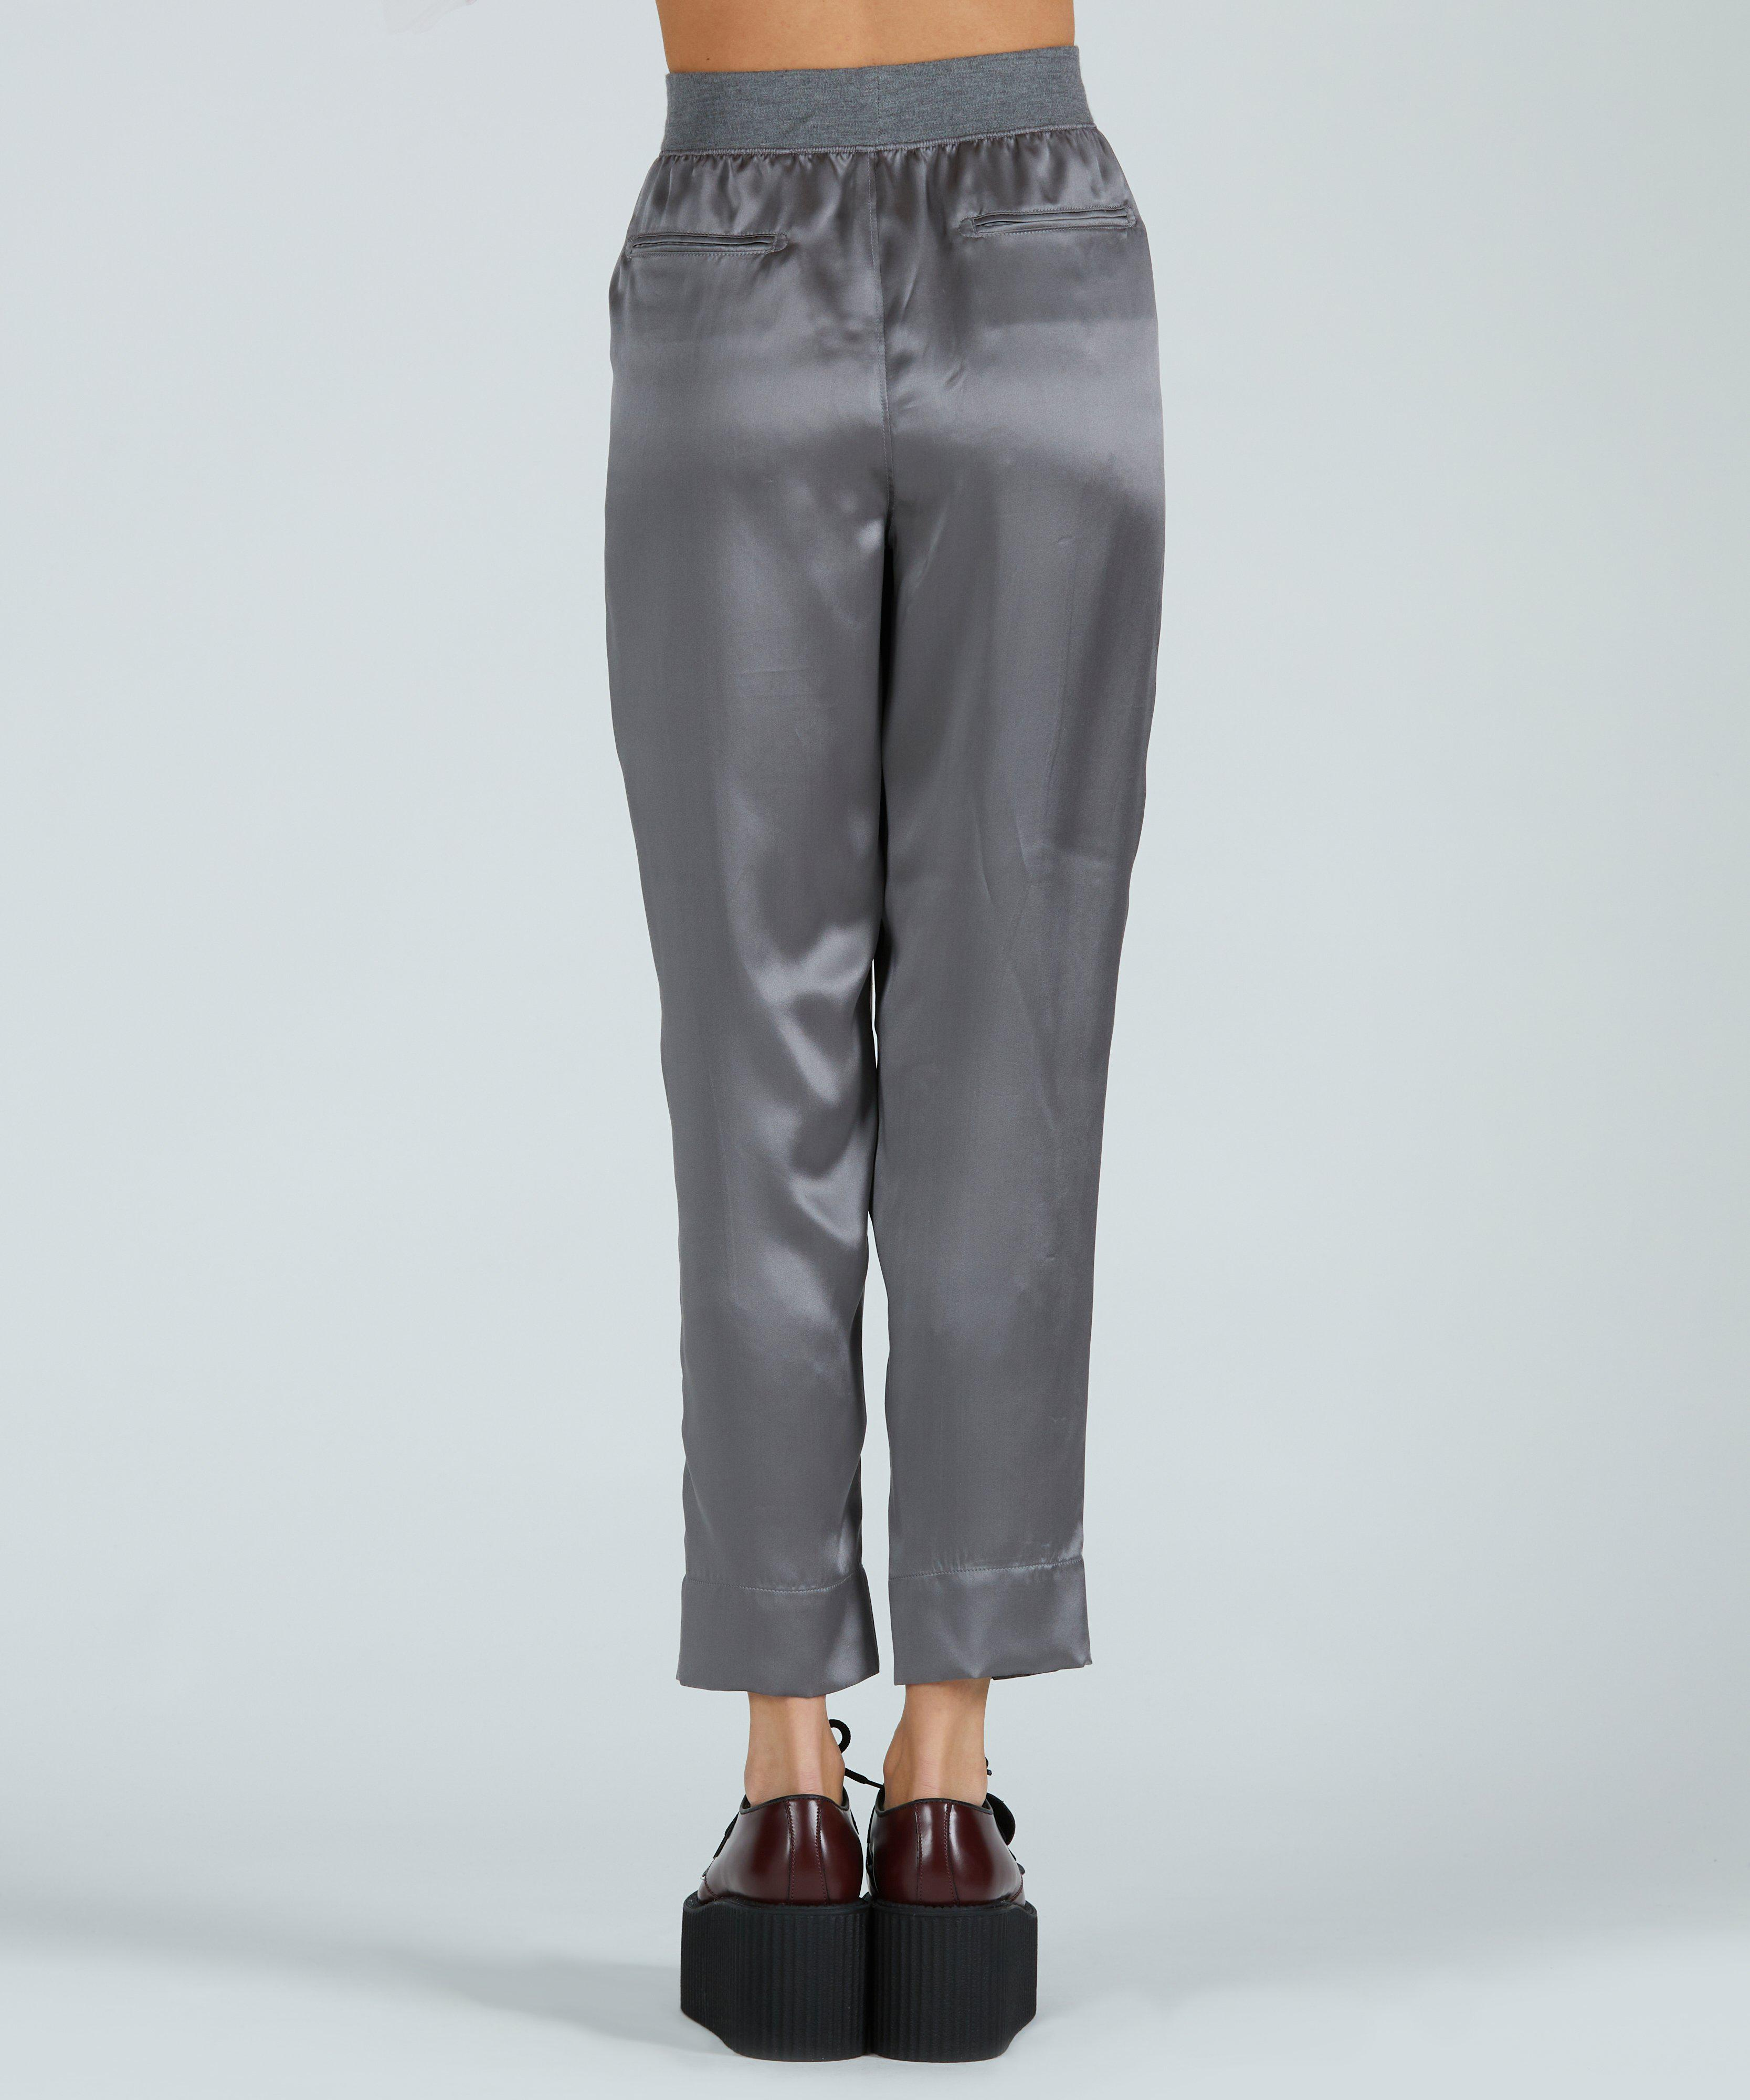 Silk Pull-On Pant - Pewter 2